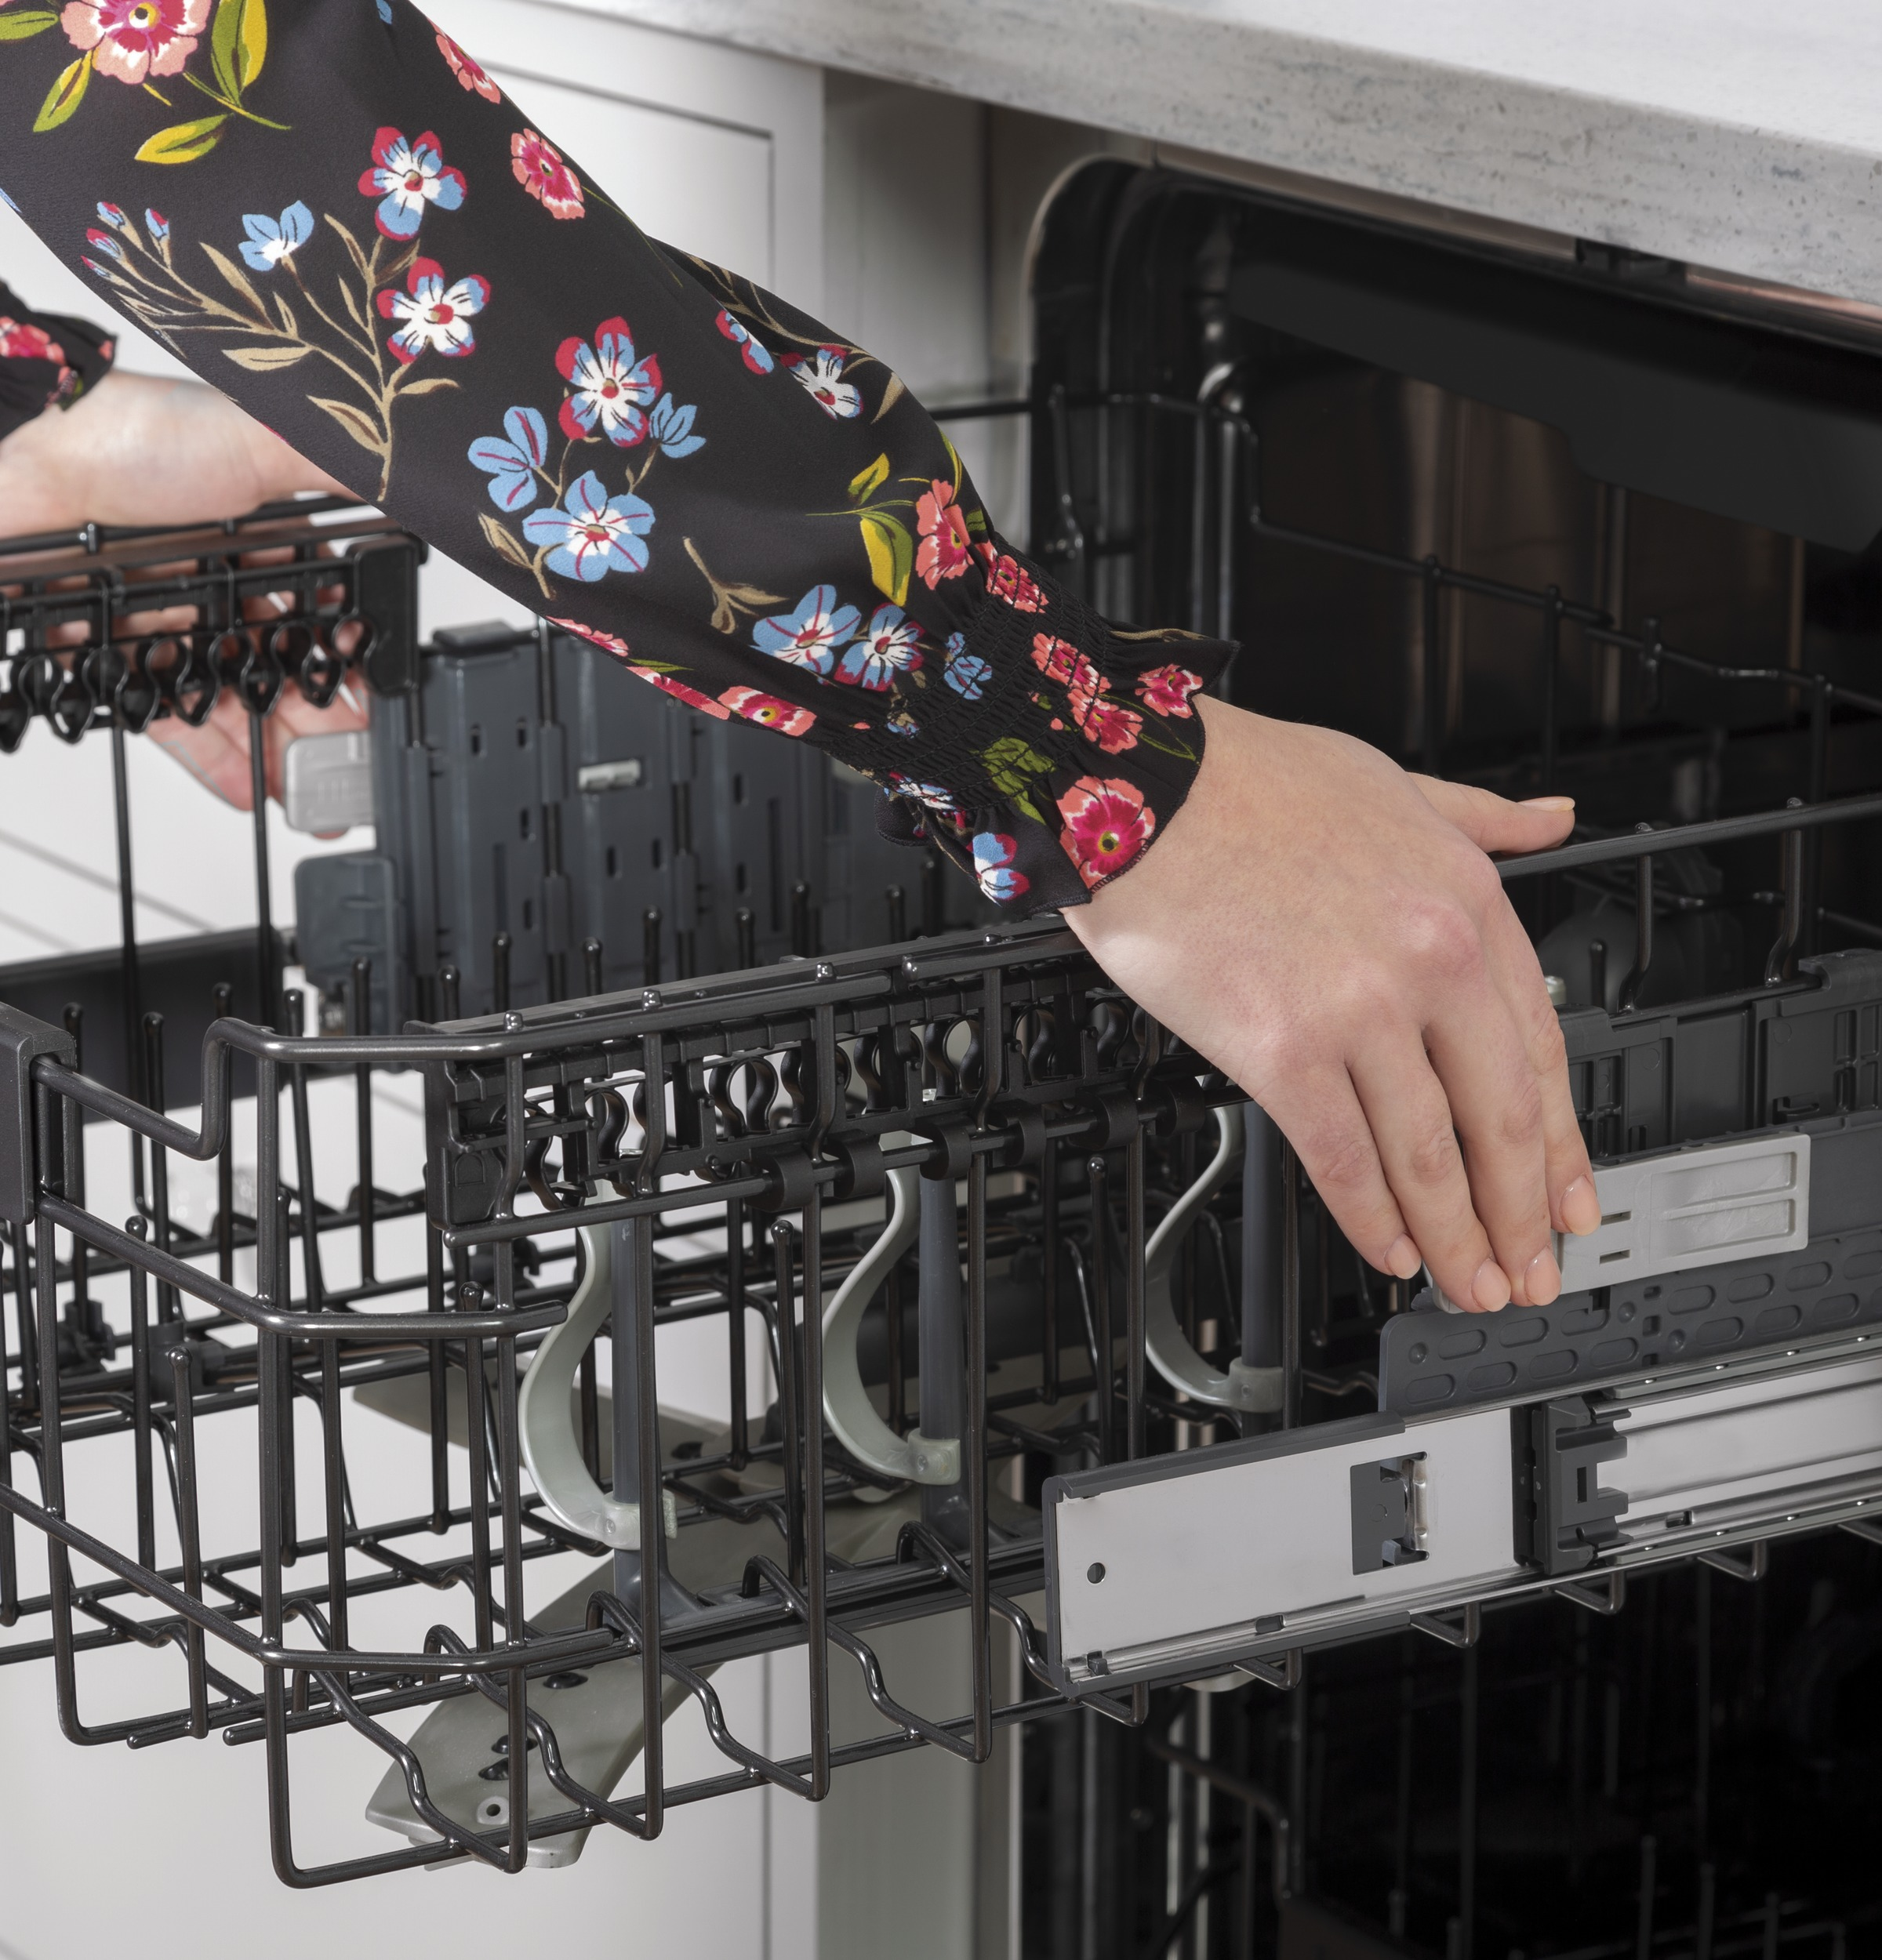 Model: CDT875P2NS1 | Cafe Café™ Smart Stainless Steel Interior Dishwasher with Sanitize and Ultra Wash & Dual Convection Ultra Dry